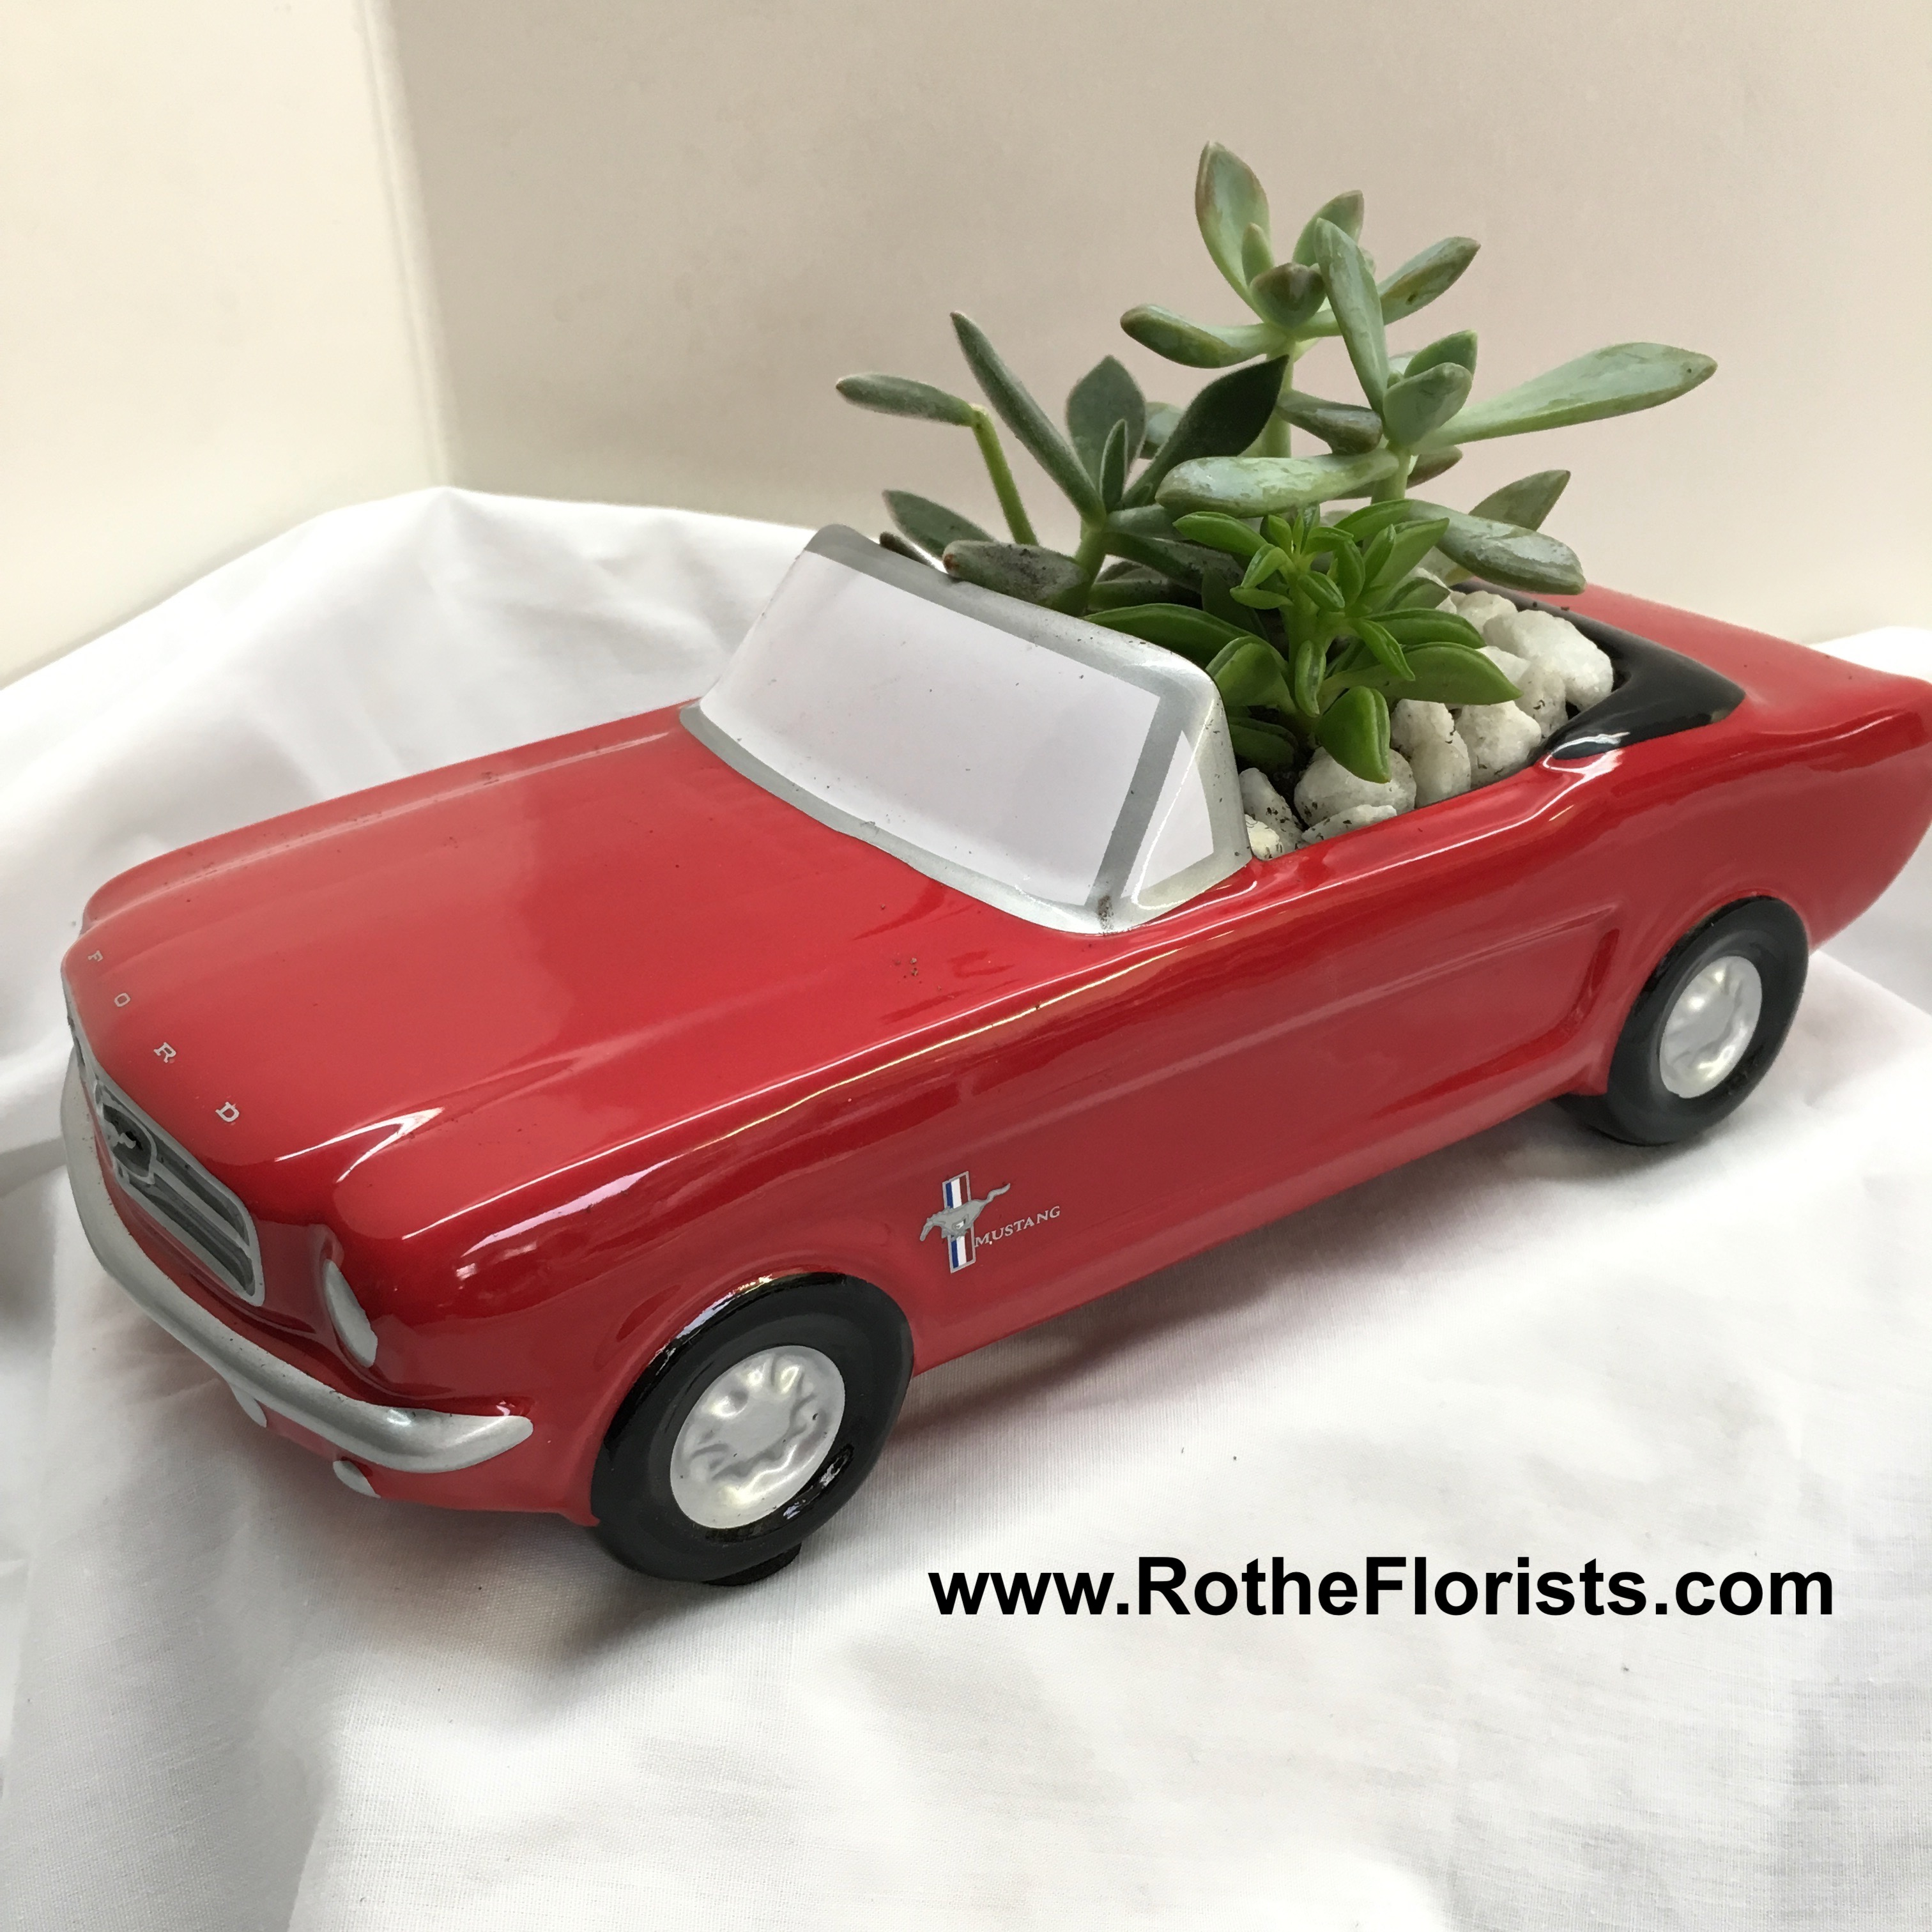 65 Ford Mustang >> 65 Ford Mustang With Succulents